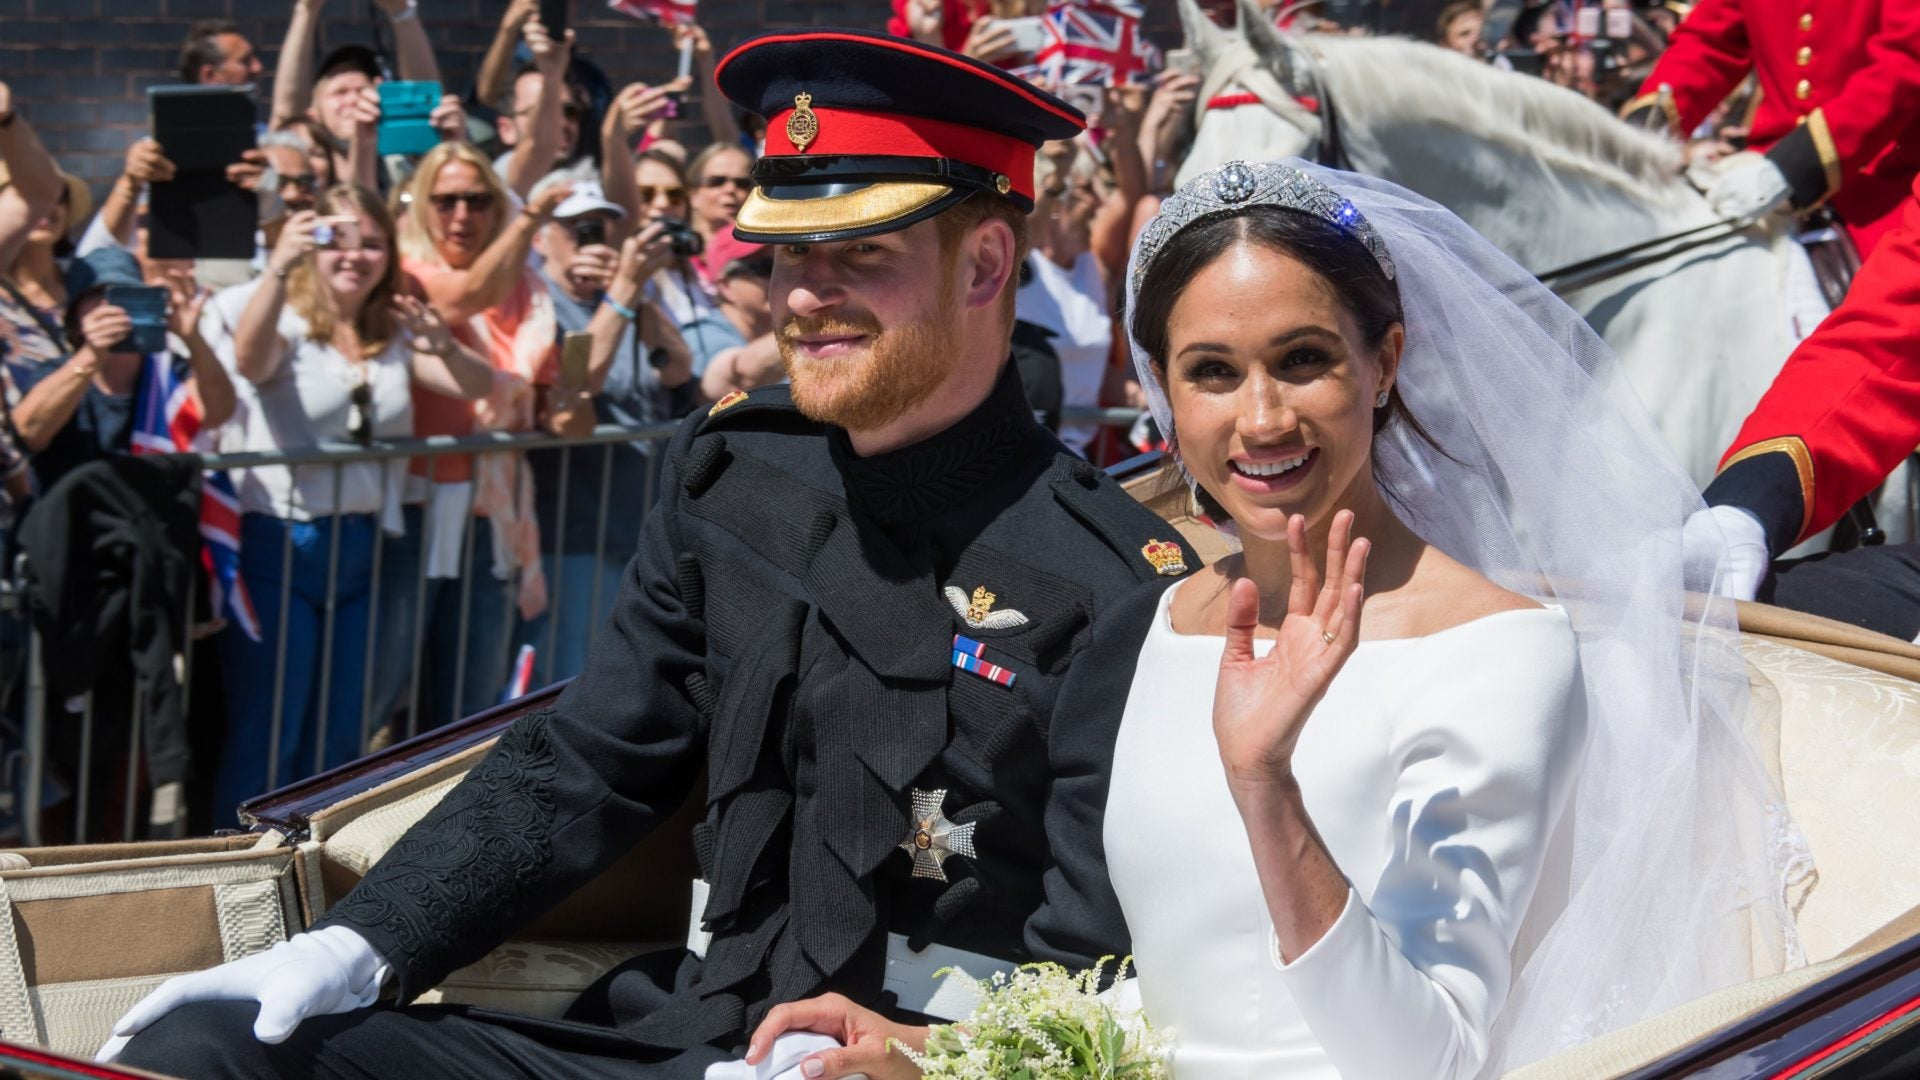 Baby Love! Meghan Markle and Prince Harry Are Expecting Their First Child